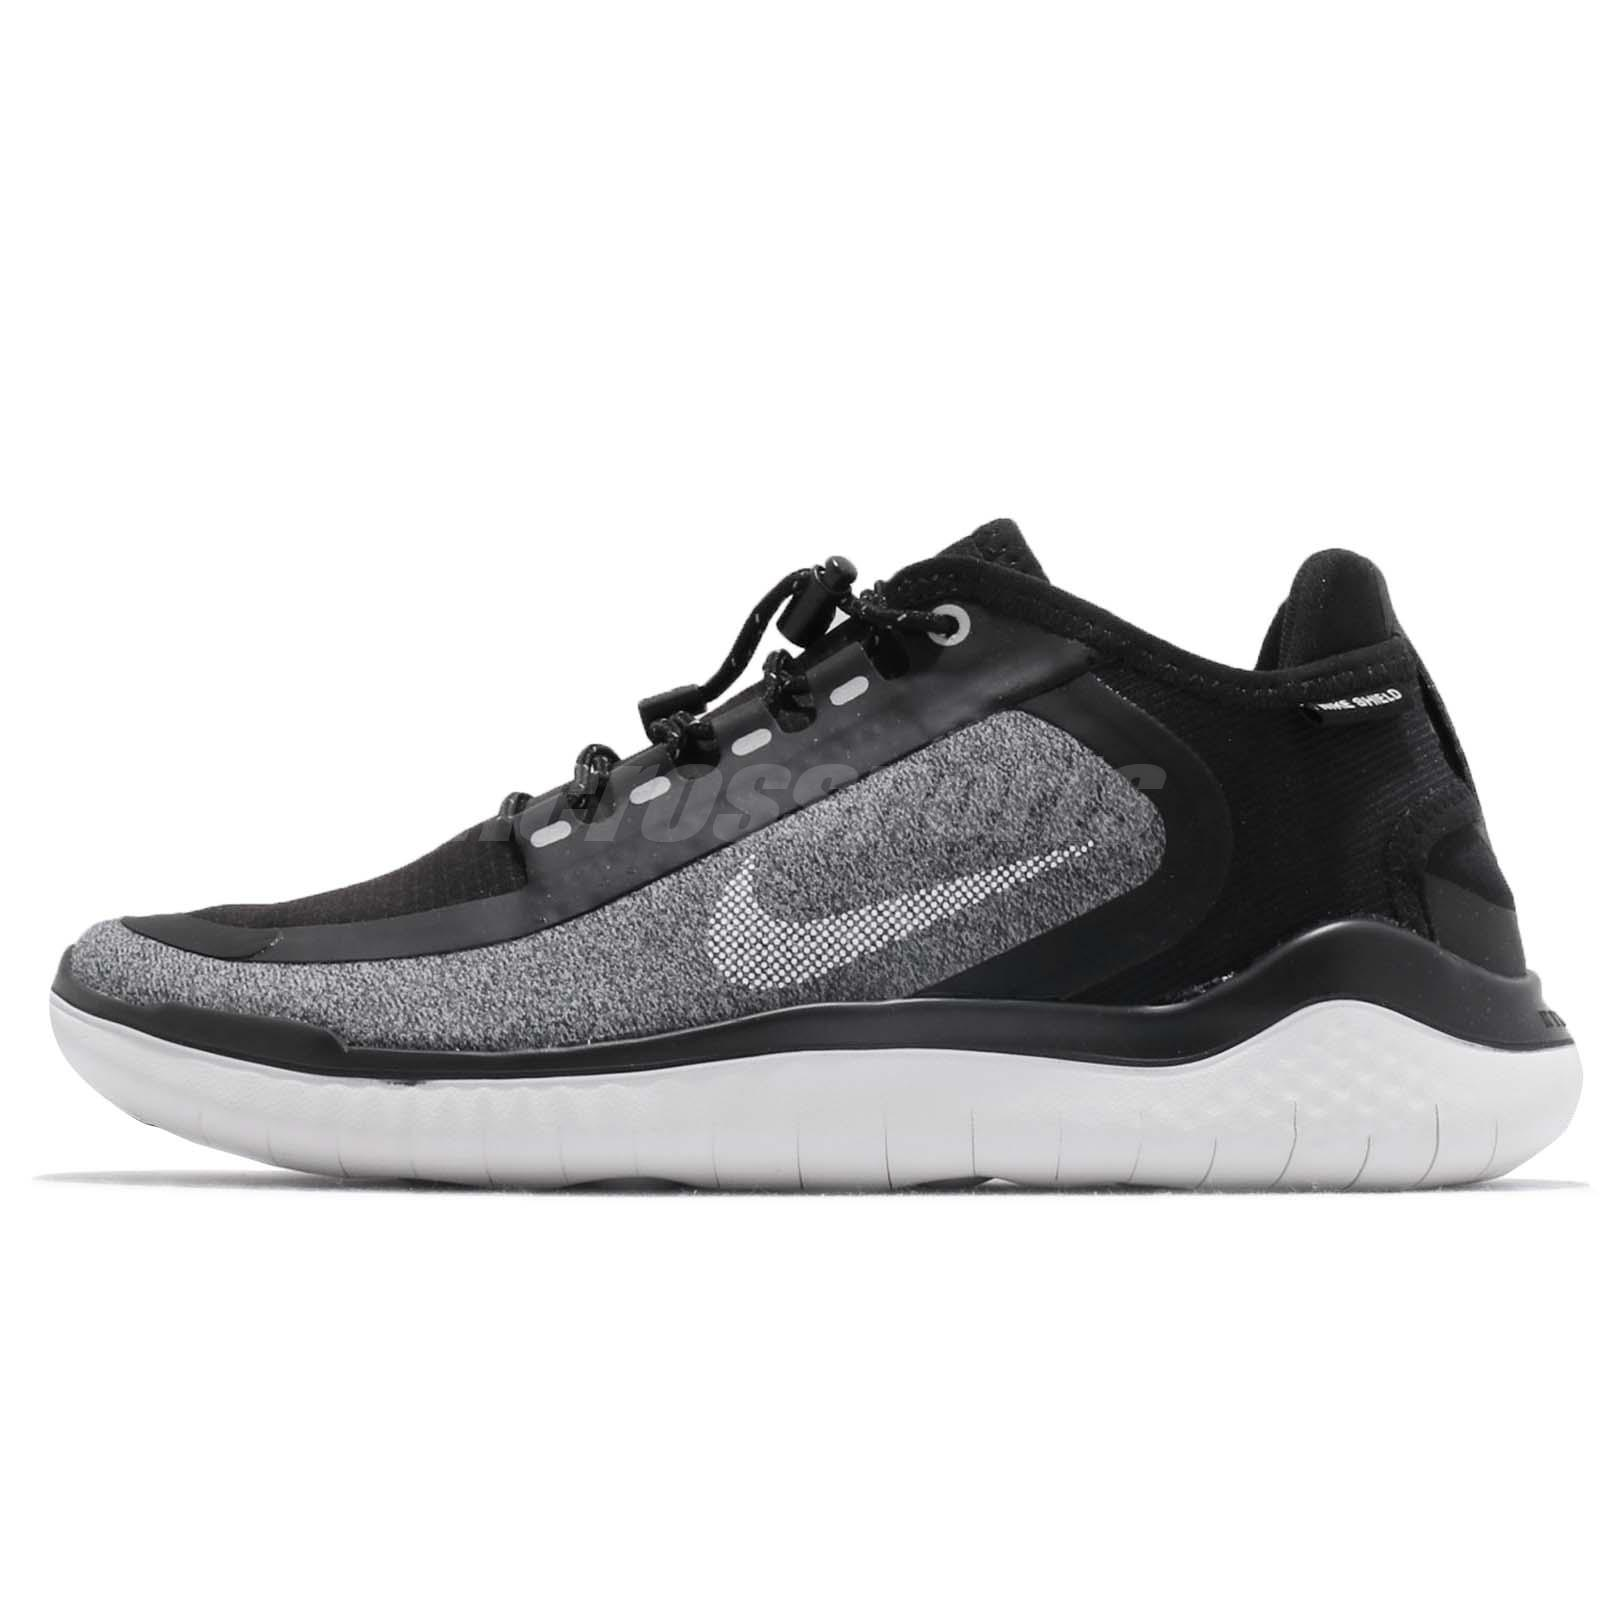 cd0f91060d964 Nike Wmns Free RN 2018 Shield Black White Grey Women Running Shoes  AJ1978-002